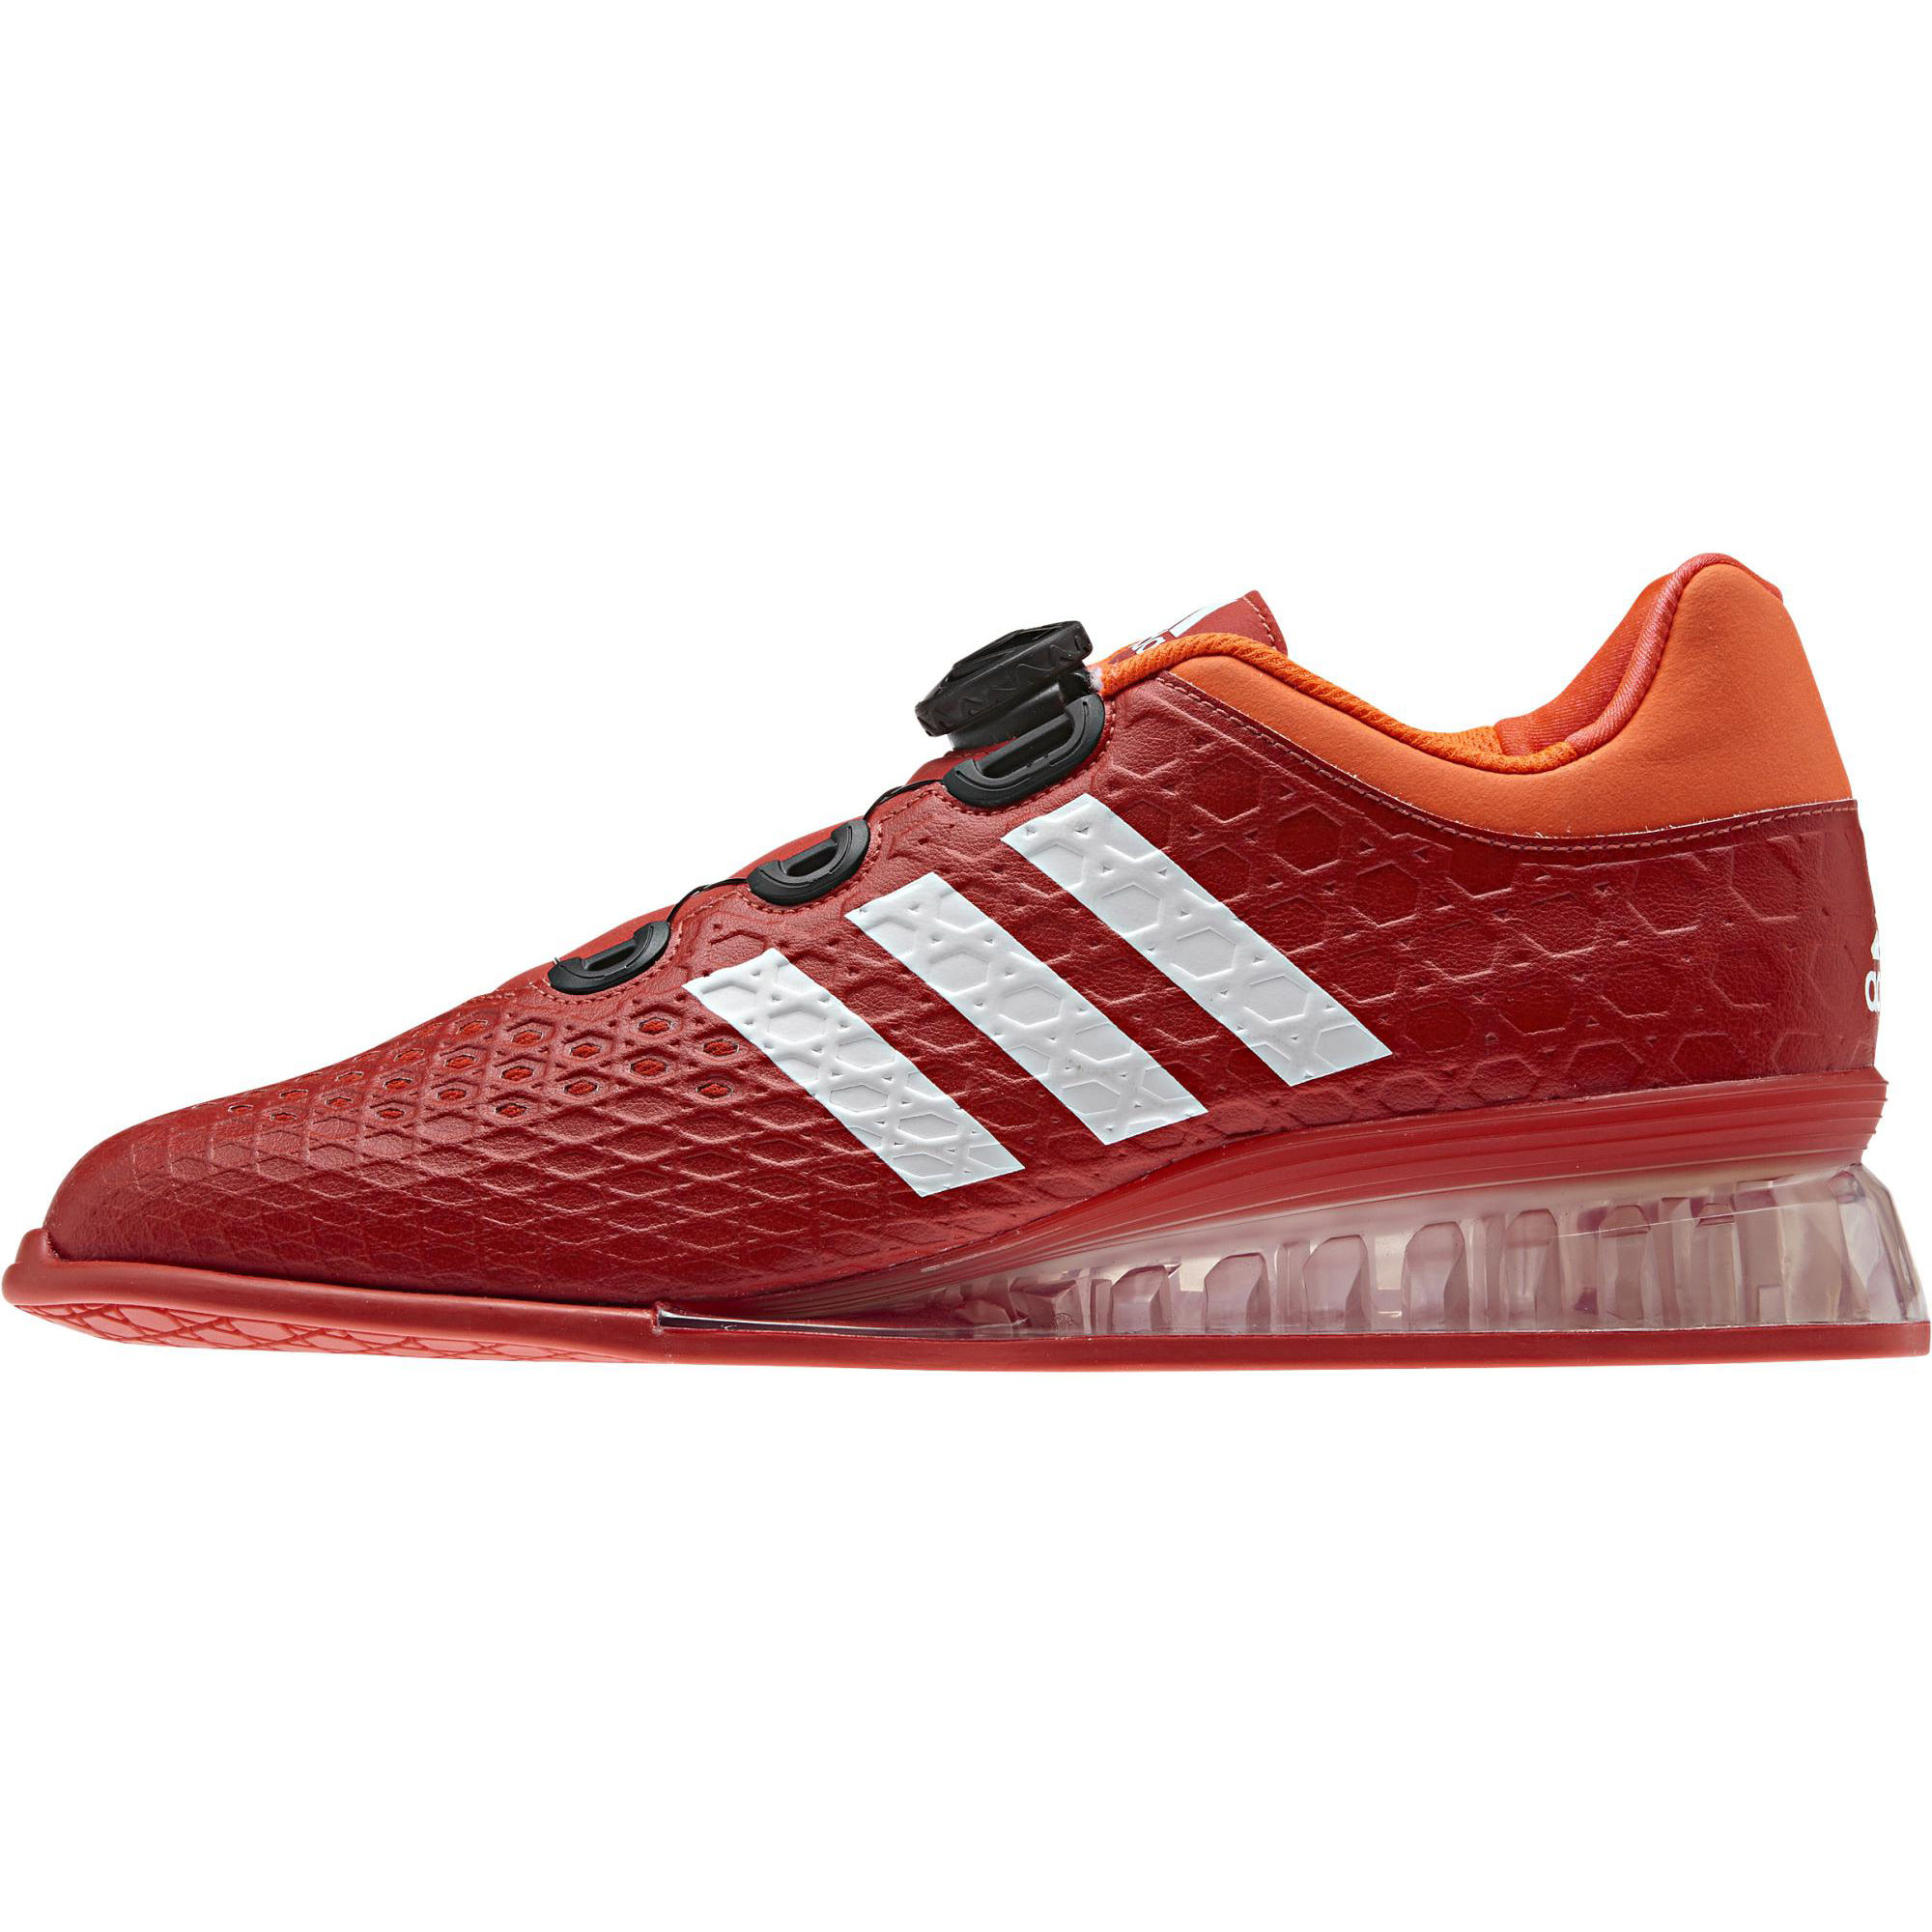 Adidas Leistung  Ii Shoes Australia